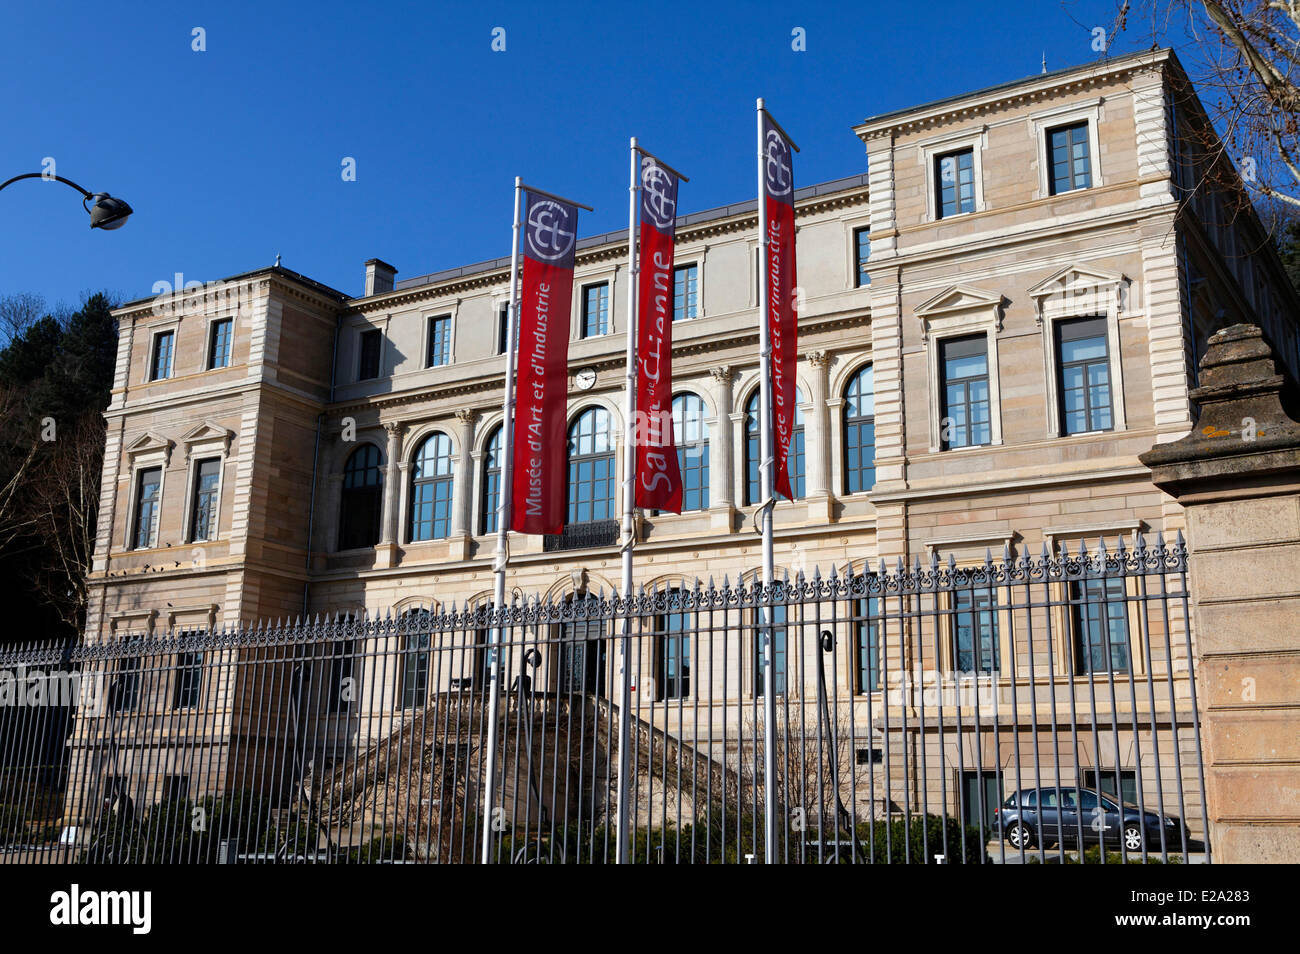 France, Loire, Saint Etienne, the museum of Art and Industry - Stock Image